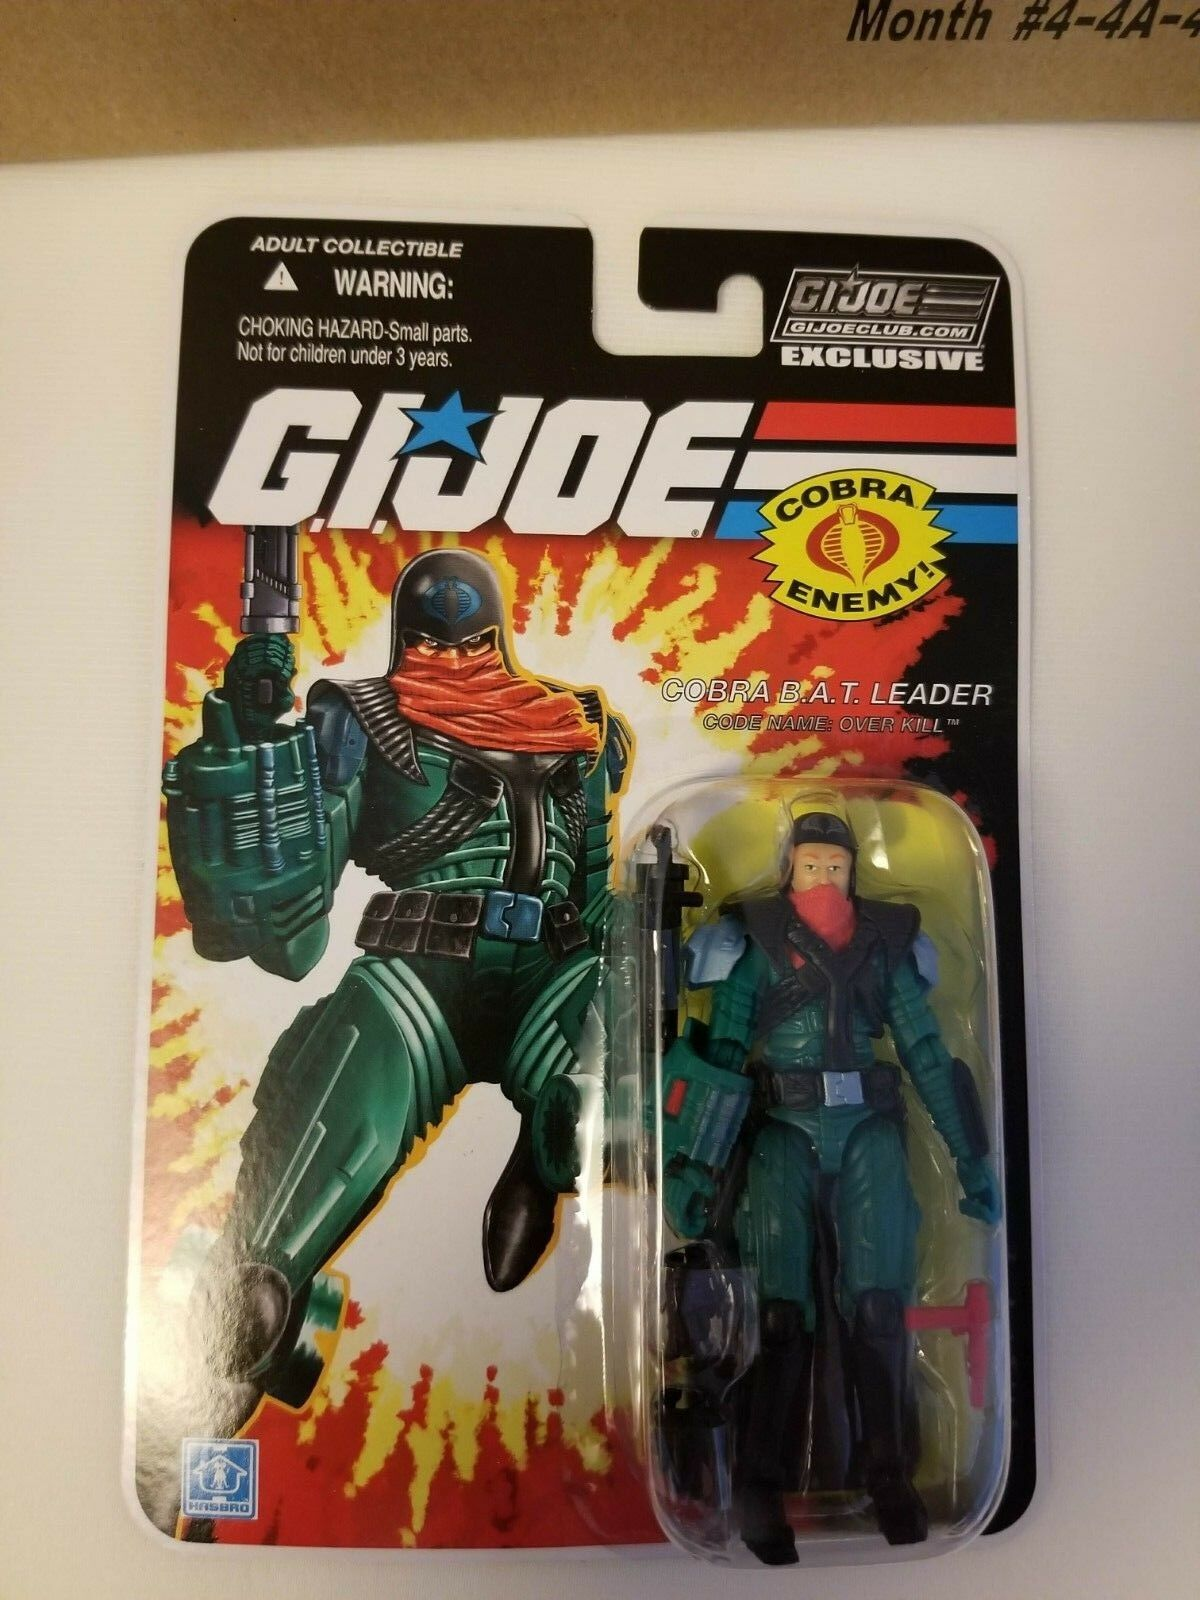 G.I.JOE Collector's Club EXCLUSIVE FSS 8.0 Overkill Cobra BAT leader MOC